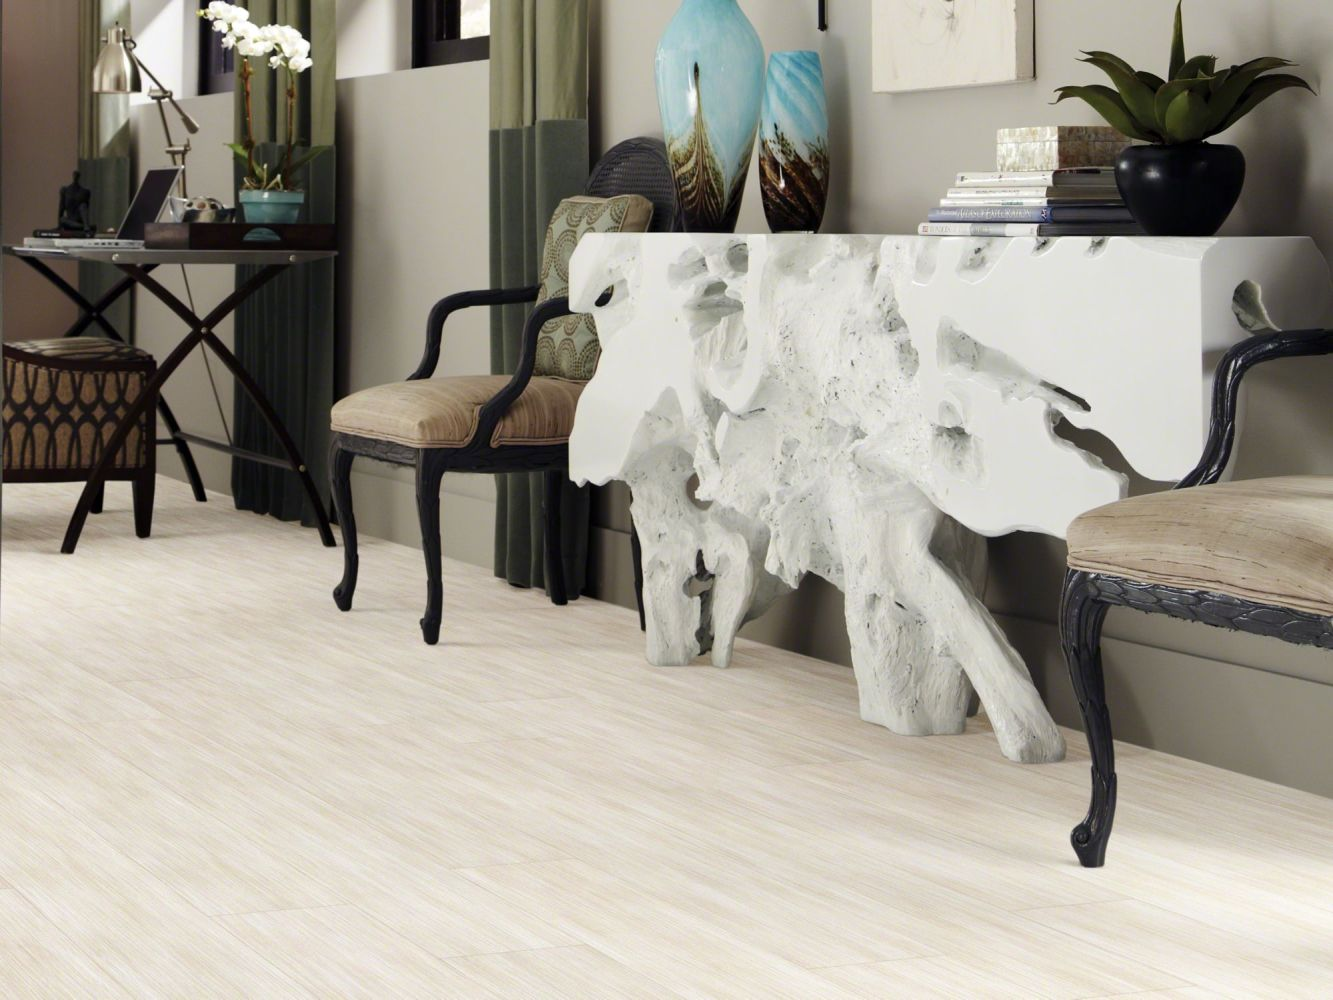 Shaw Floors Resilient Property Solutions Modernality 12plank Bistro 00271_VPS42